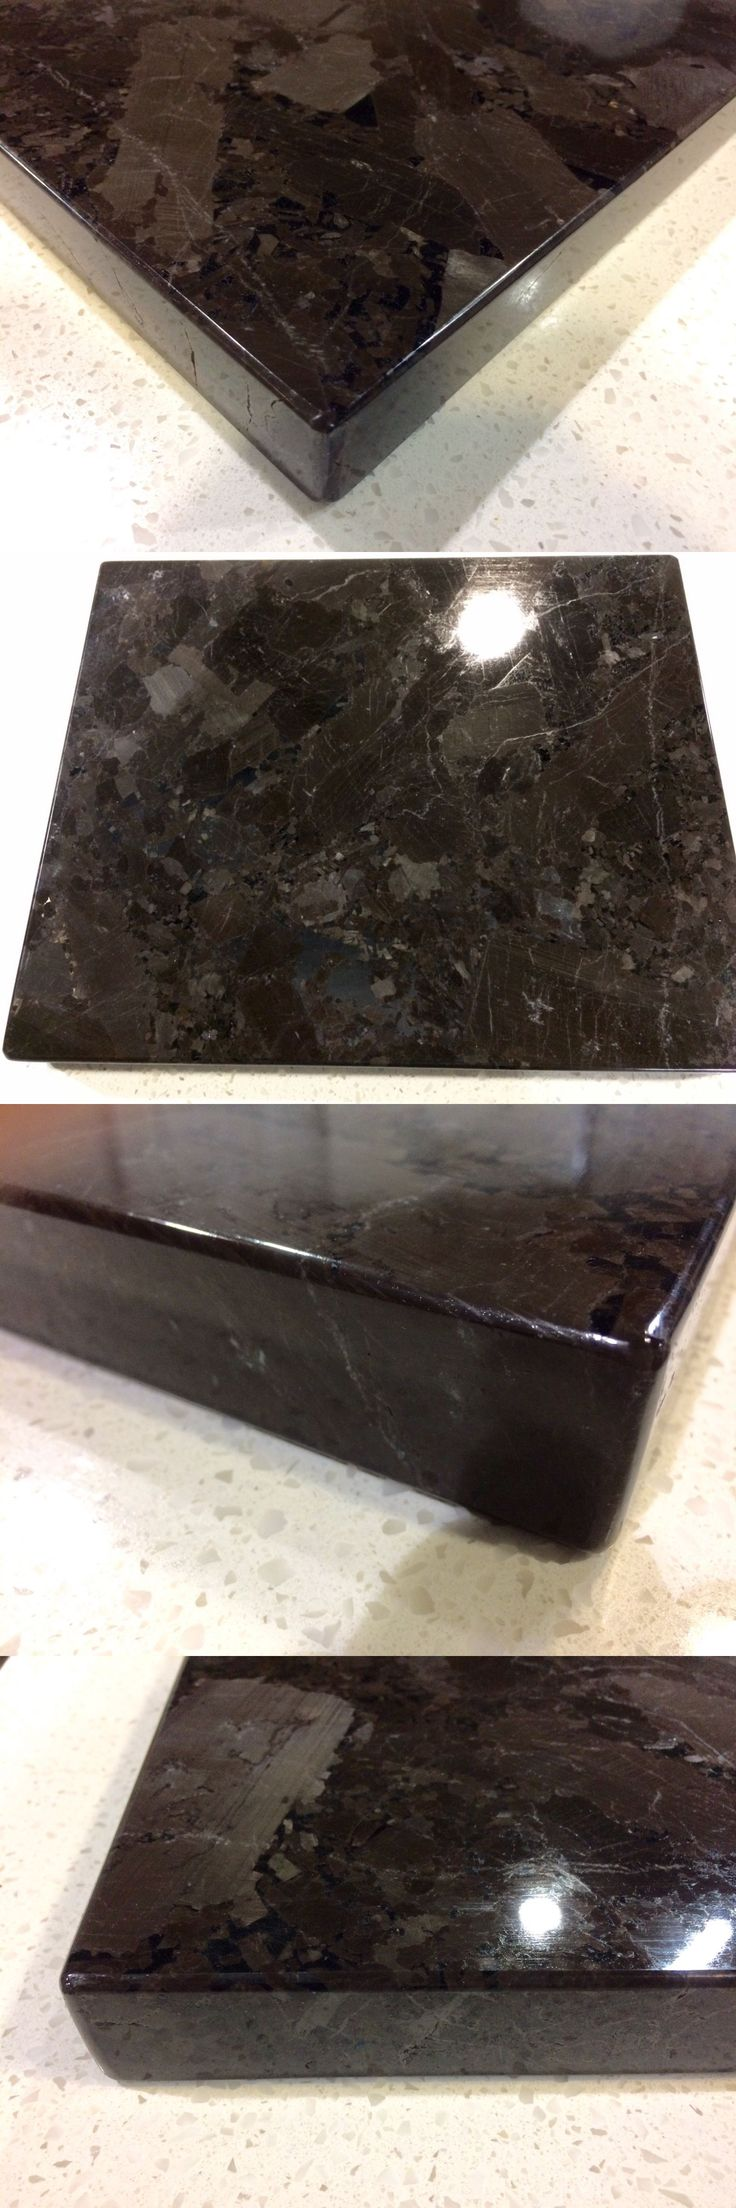 Cutting Boards 46282: Granite Cutting Board Brown Antique Natural Stone 10 X12 X 1 1 4 -> BUY IT NOW ONLY: $38.79 on eBay!